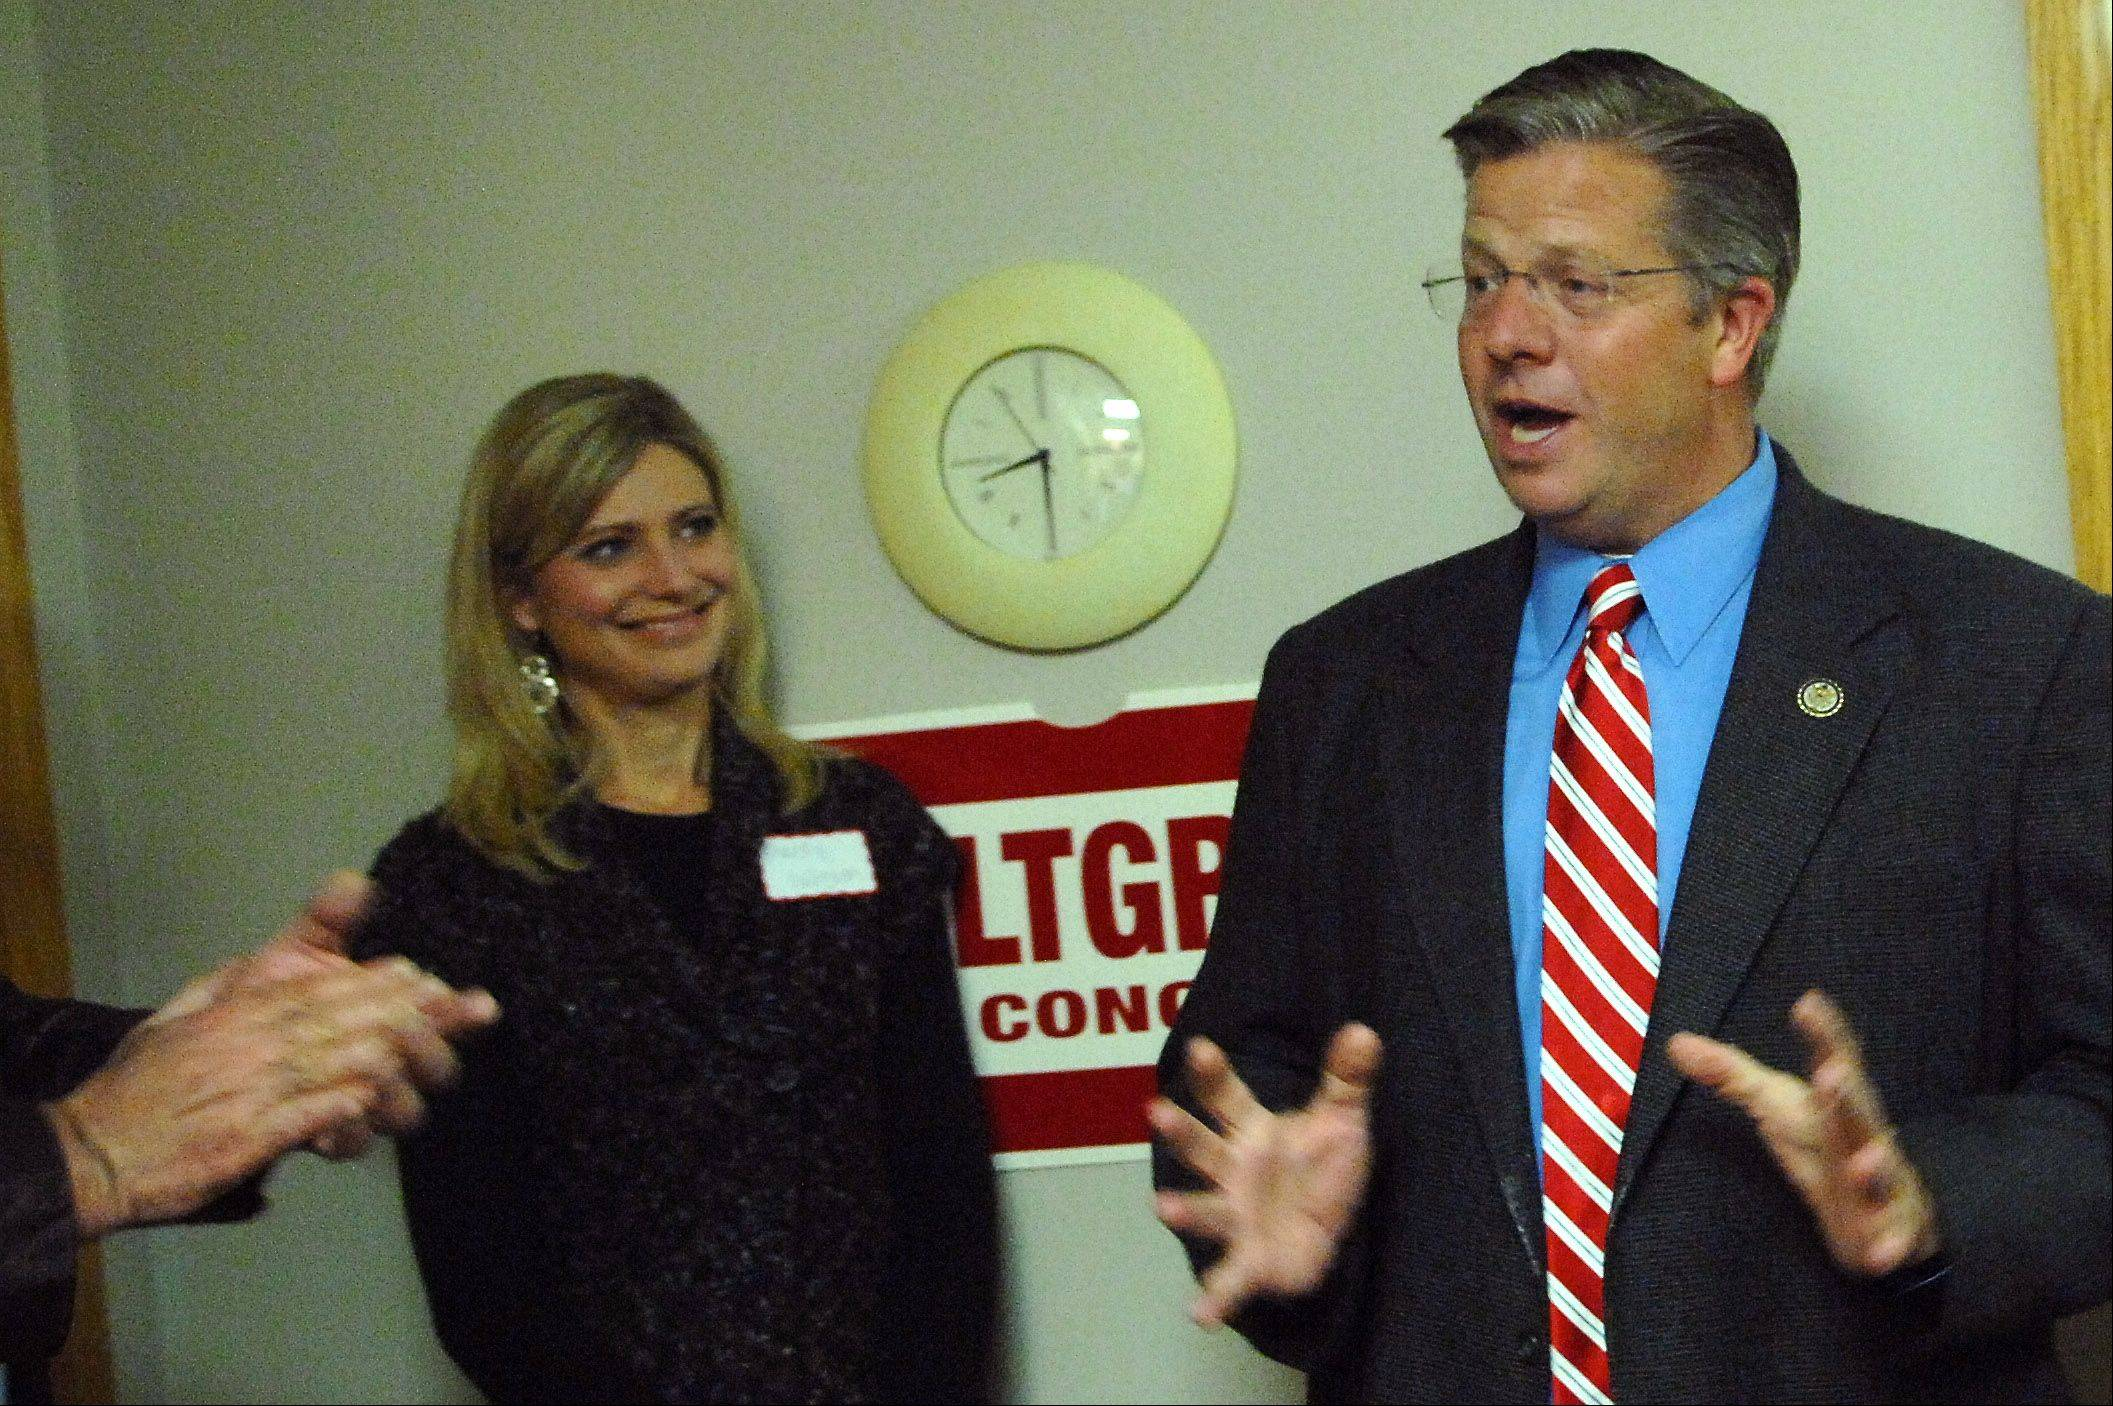 U.S. Rep. Hultgren wins in 14th